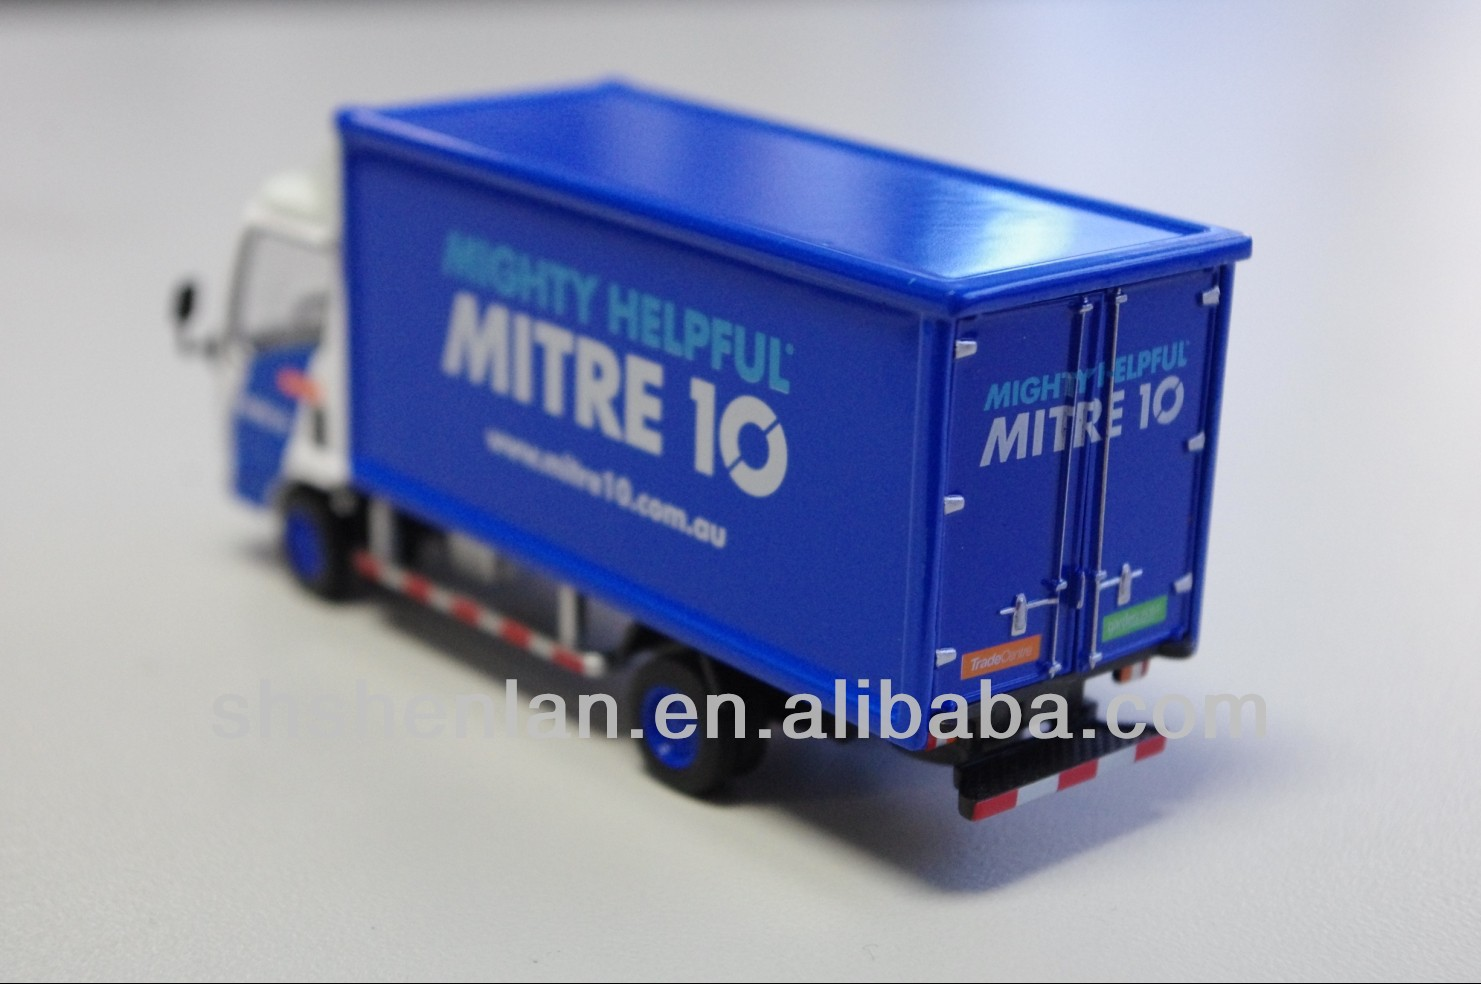 1 64 Scale Trucks Wholesale, Scale Truck Suppliers - Alibaba